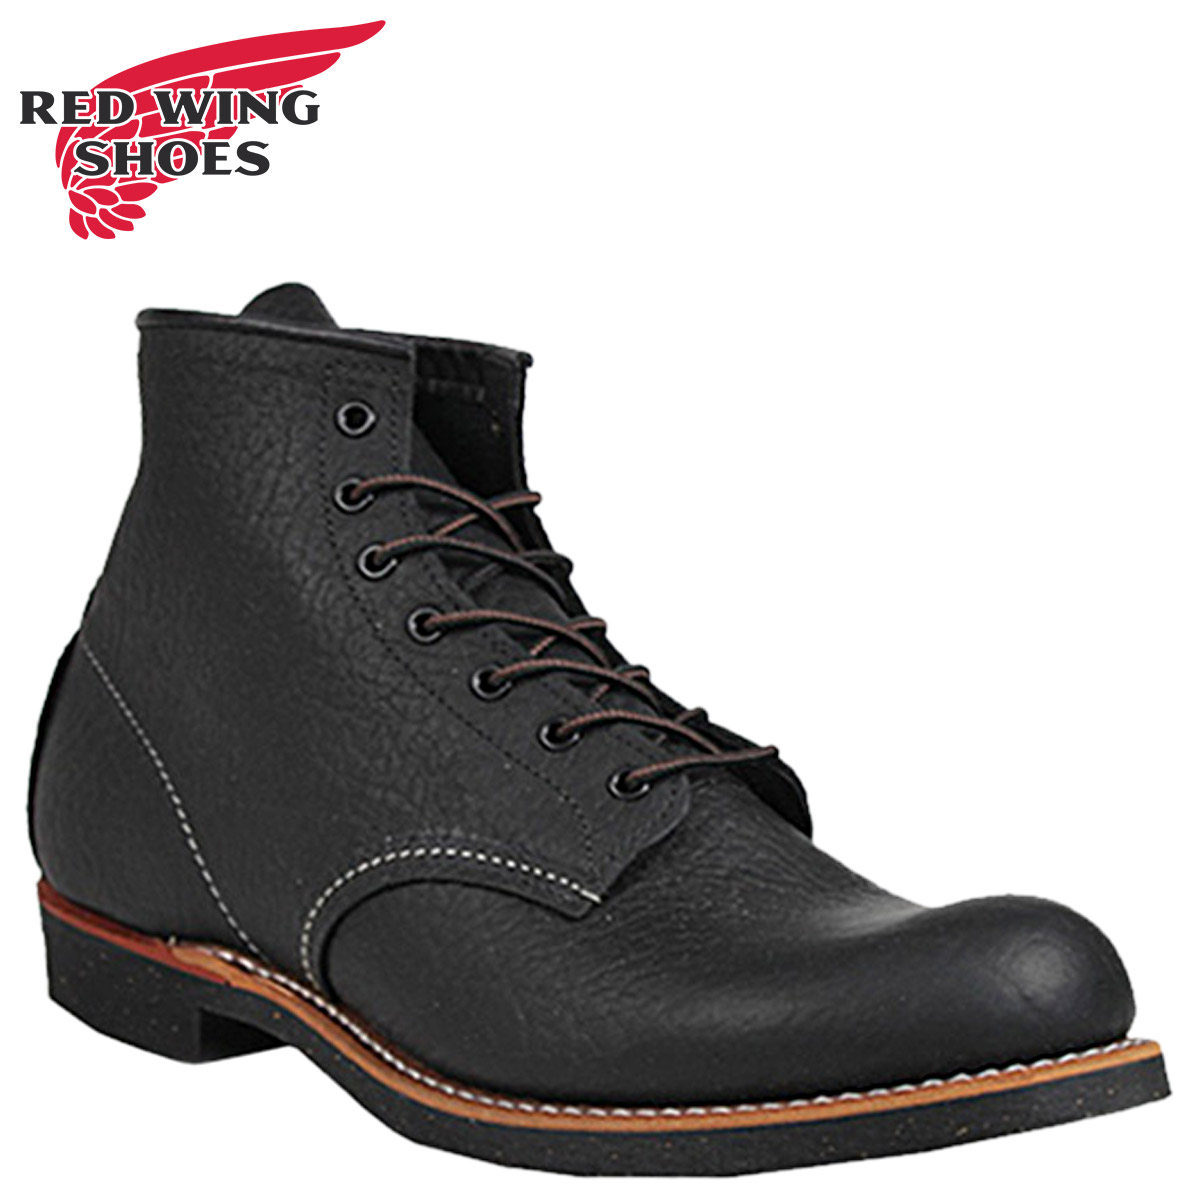 68d6cc8db46 Allsports Redwing Red Wing Brooks Brothers Beckman Round To Boots